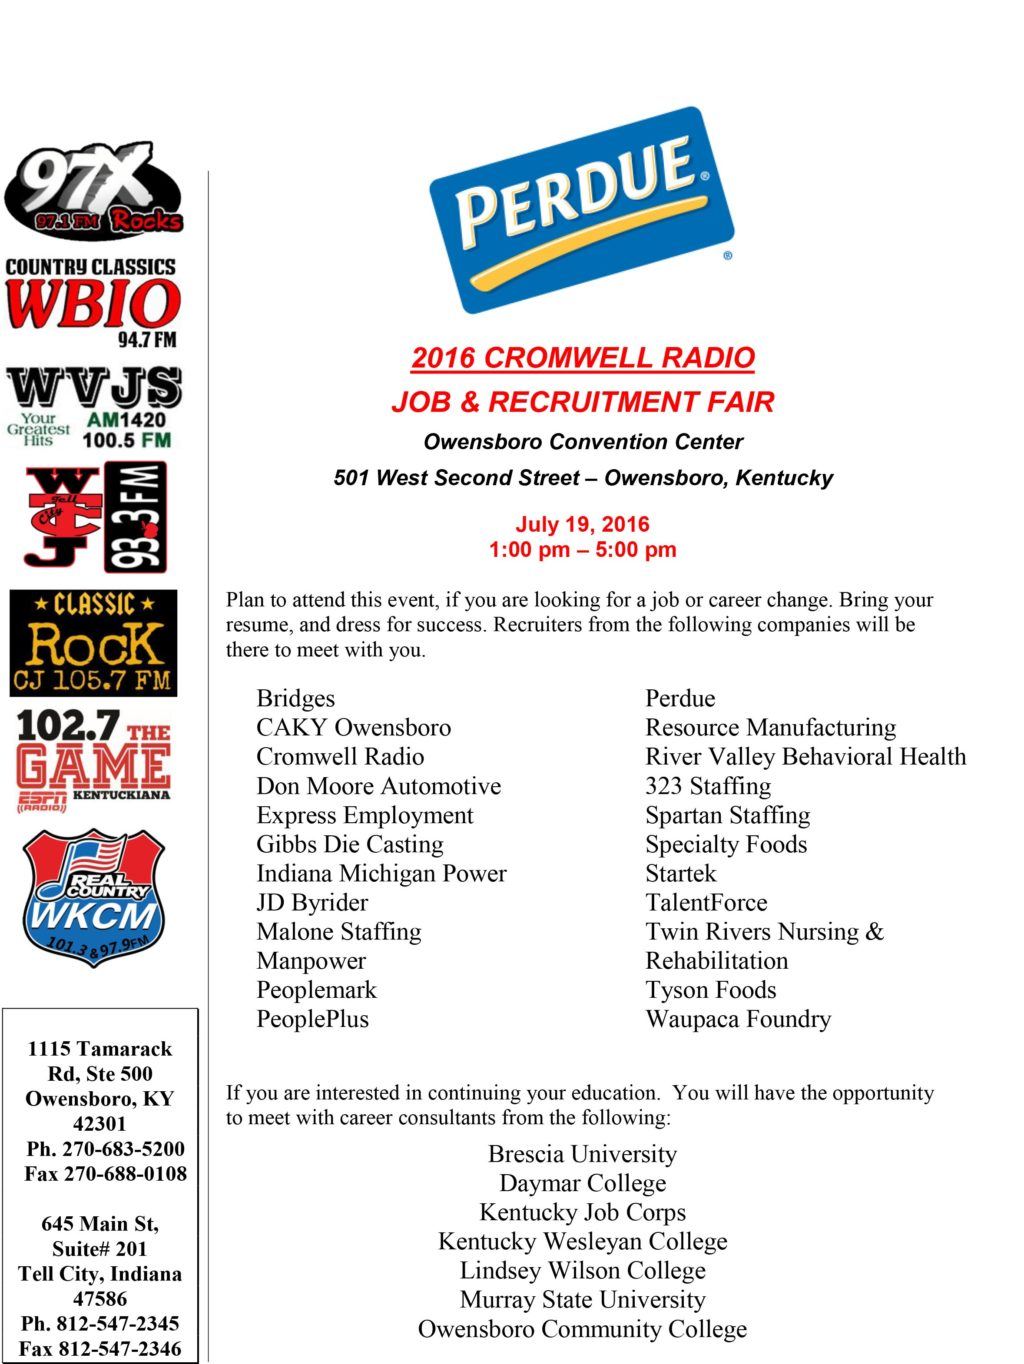 Perdue Farms Job  Recruitment Fair Recruiters  (rev0714161252)